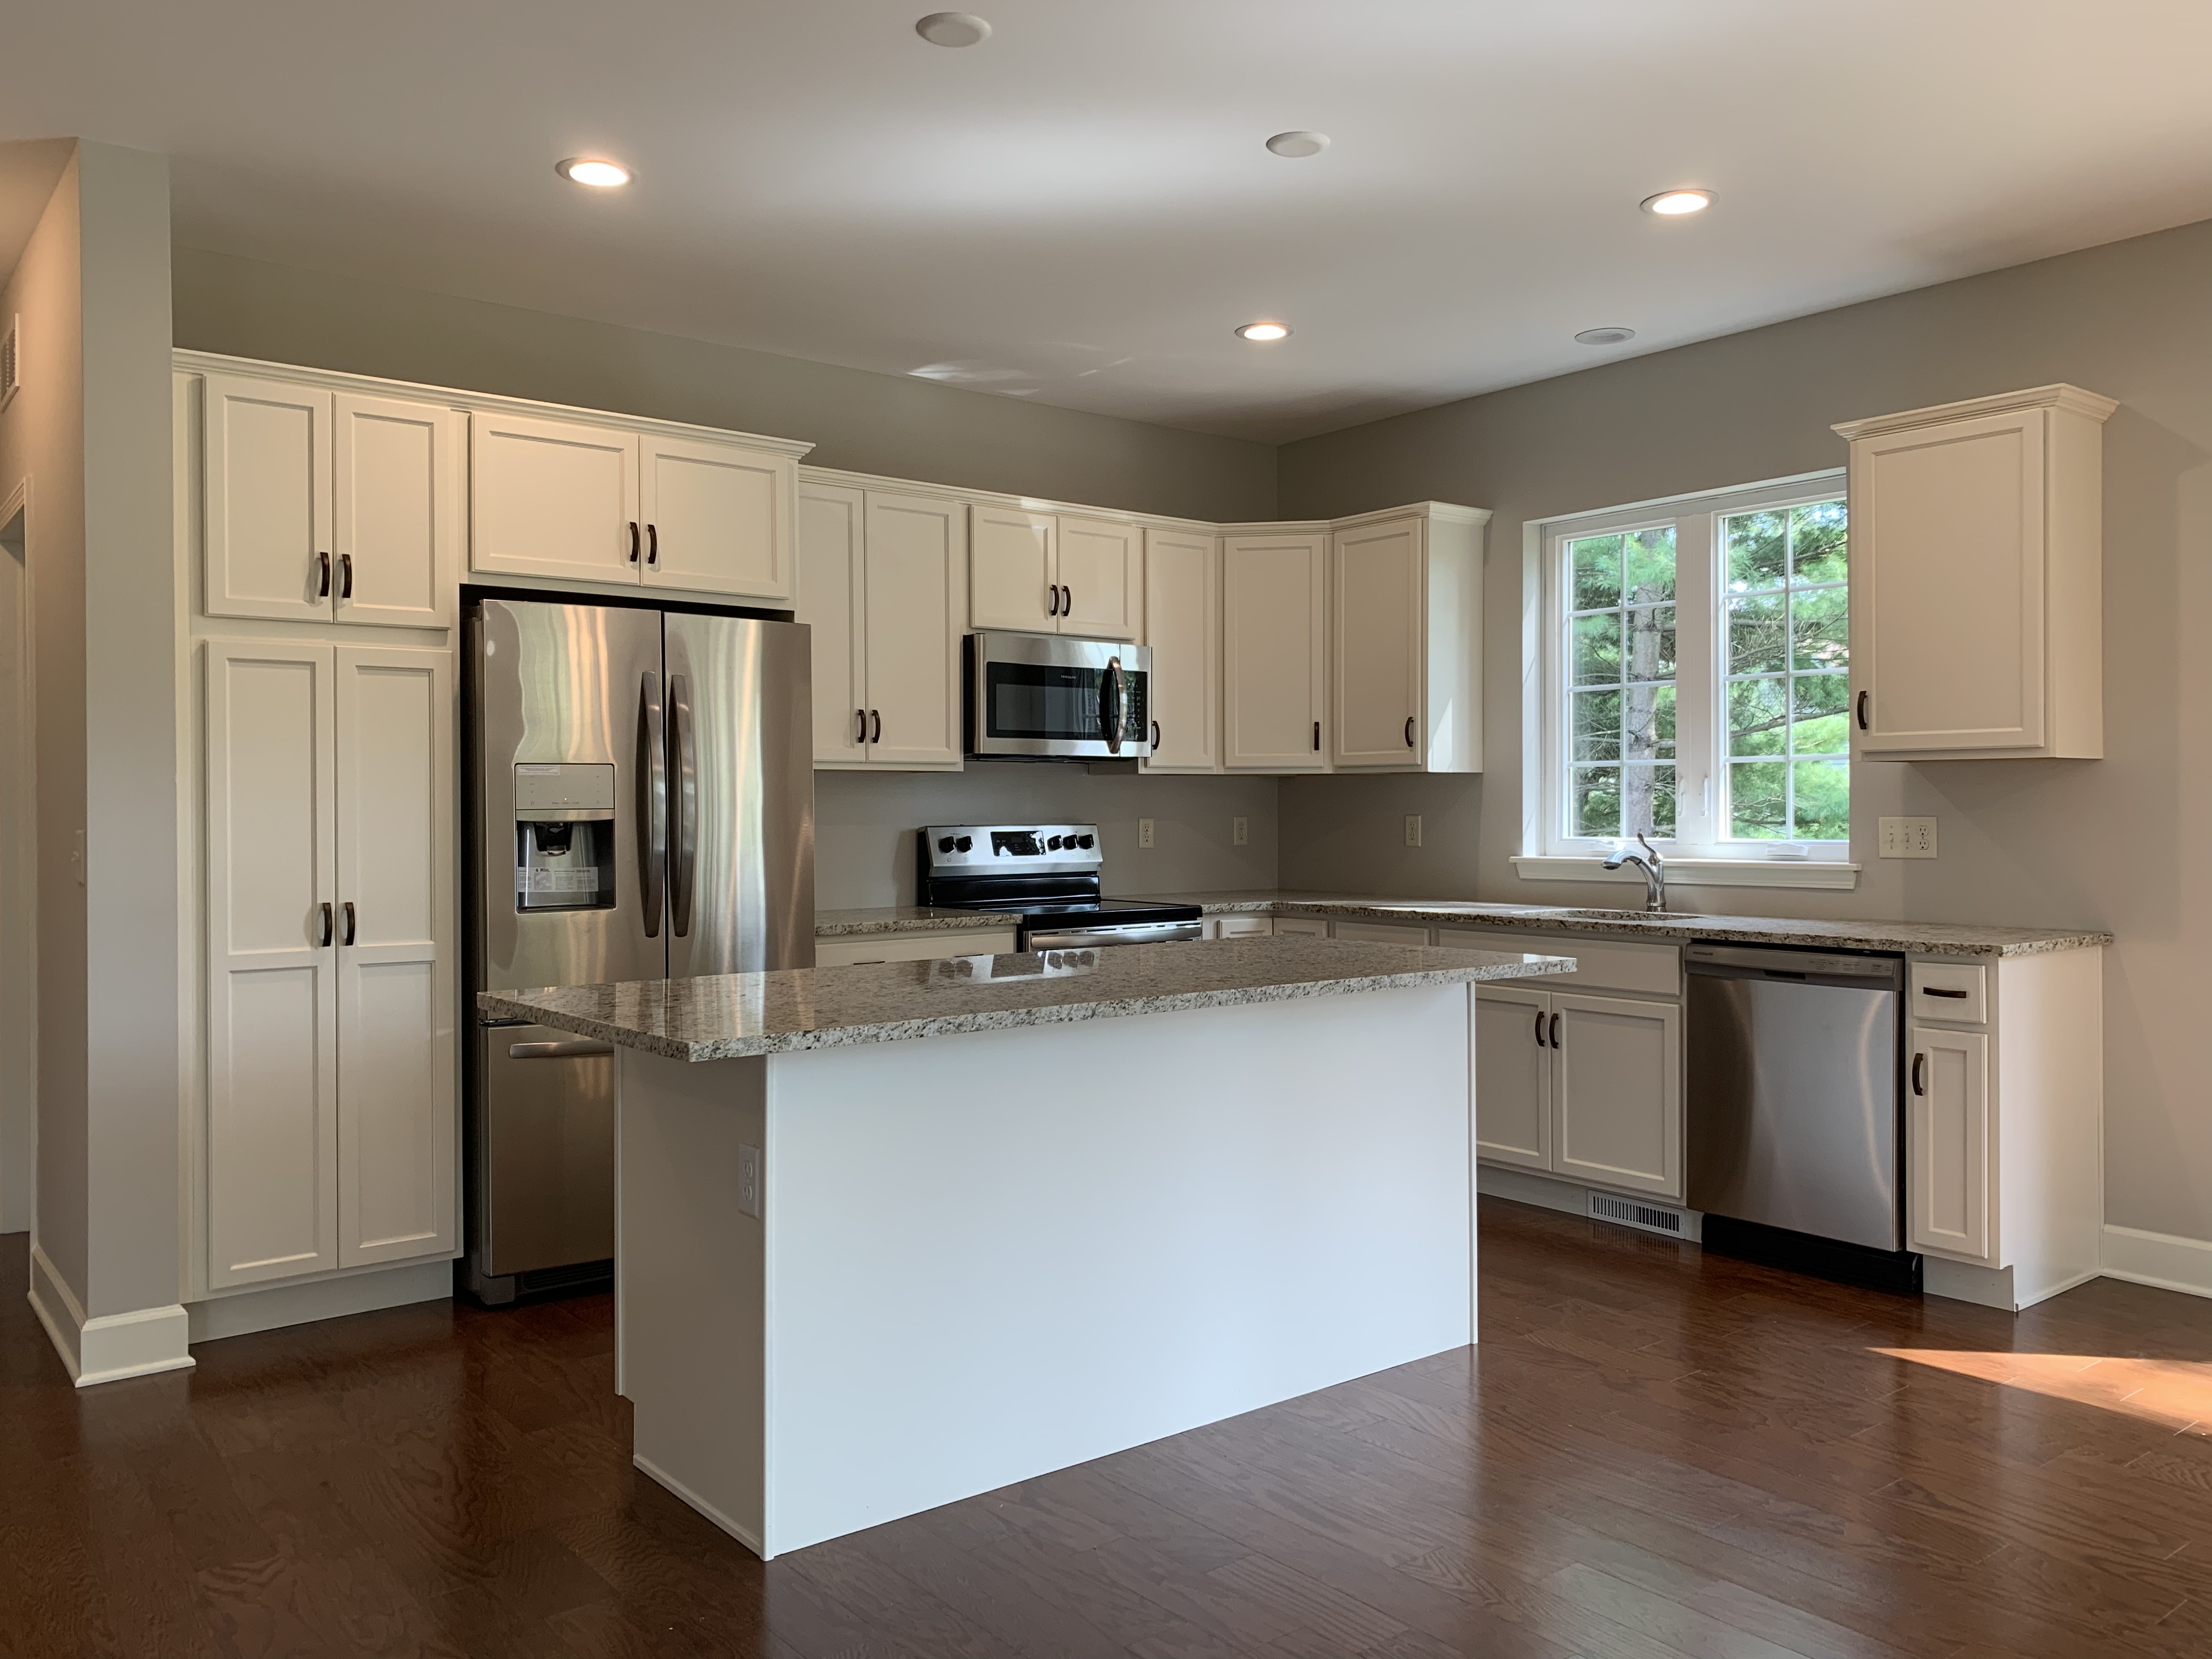 Kitchen with Hardwood, White Cabinets, Granite Counters and Stainless Steal Appliances